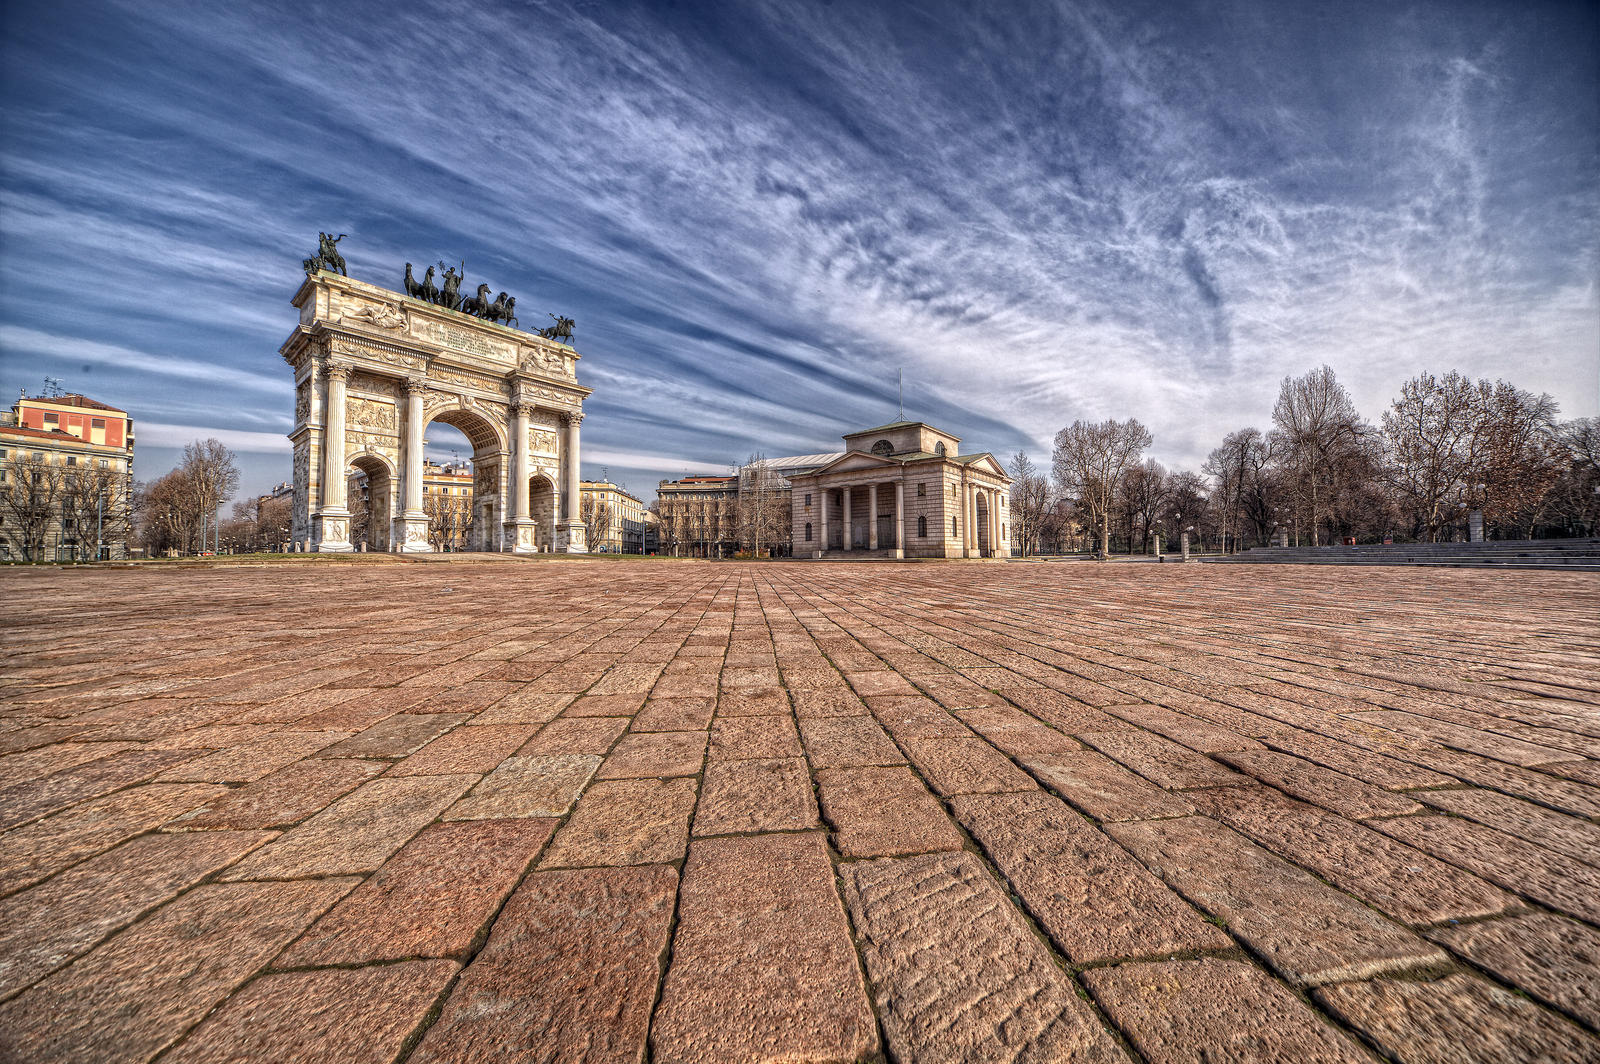 Arco Italy  city pictures gallery : ARCO DELLA PACE MILANO ITALY by zefirino on DeviantArt